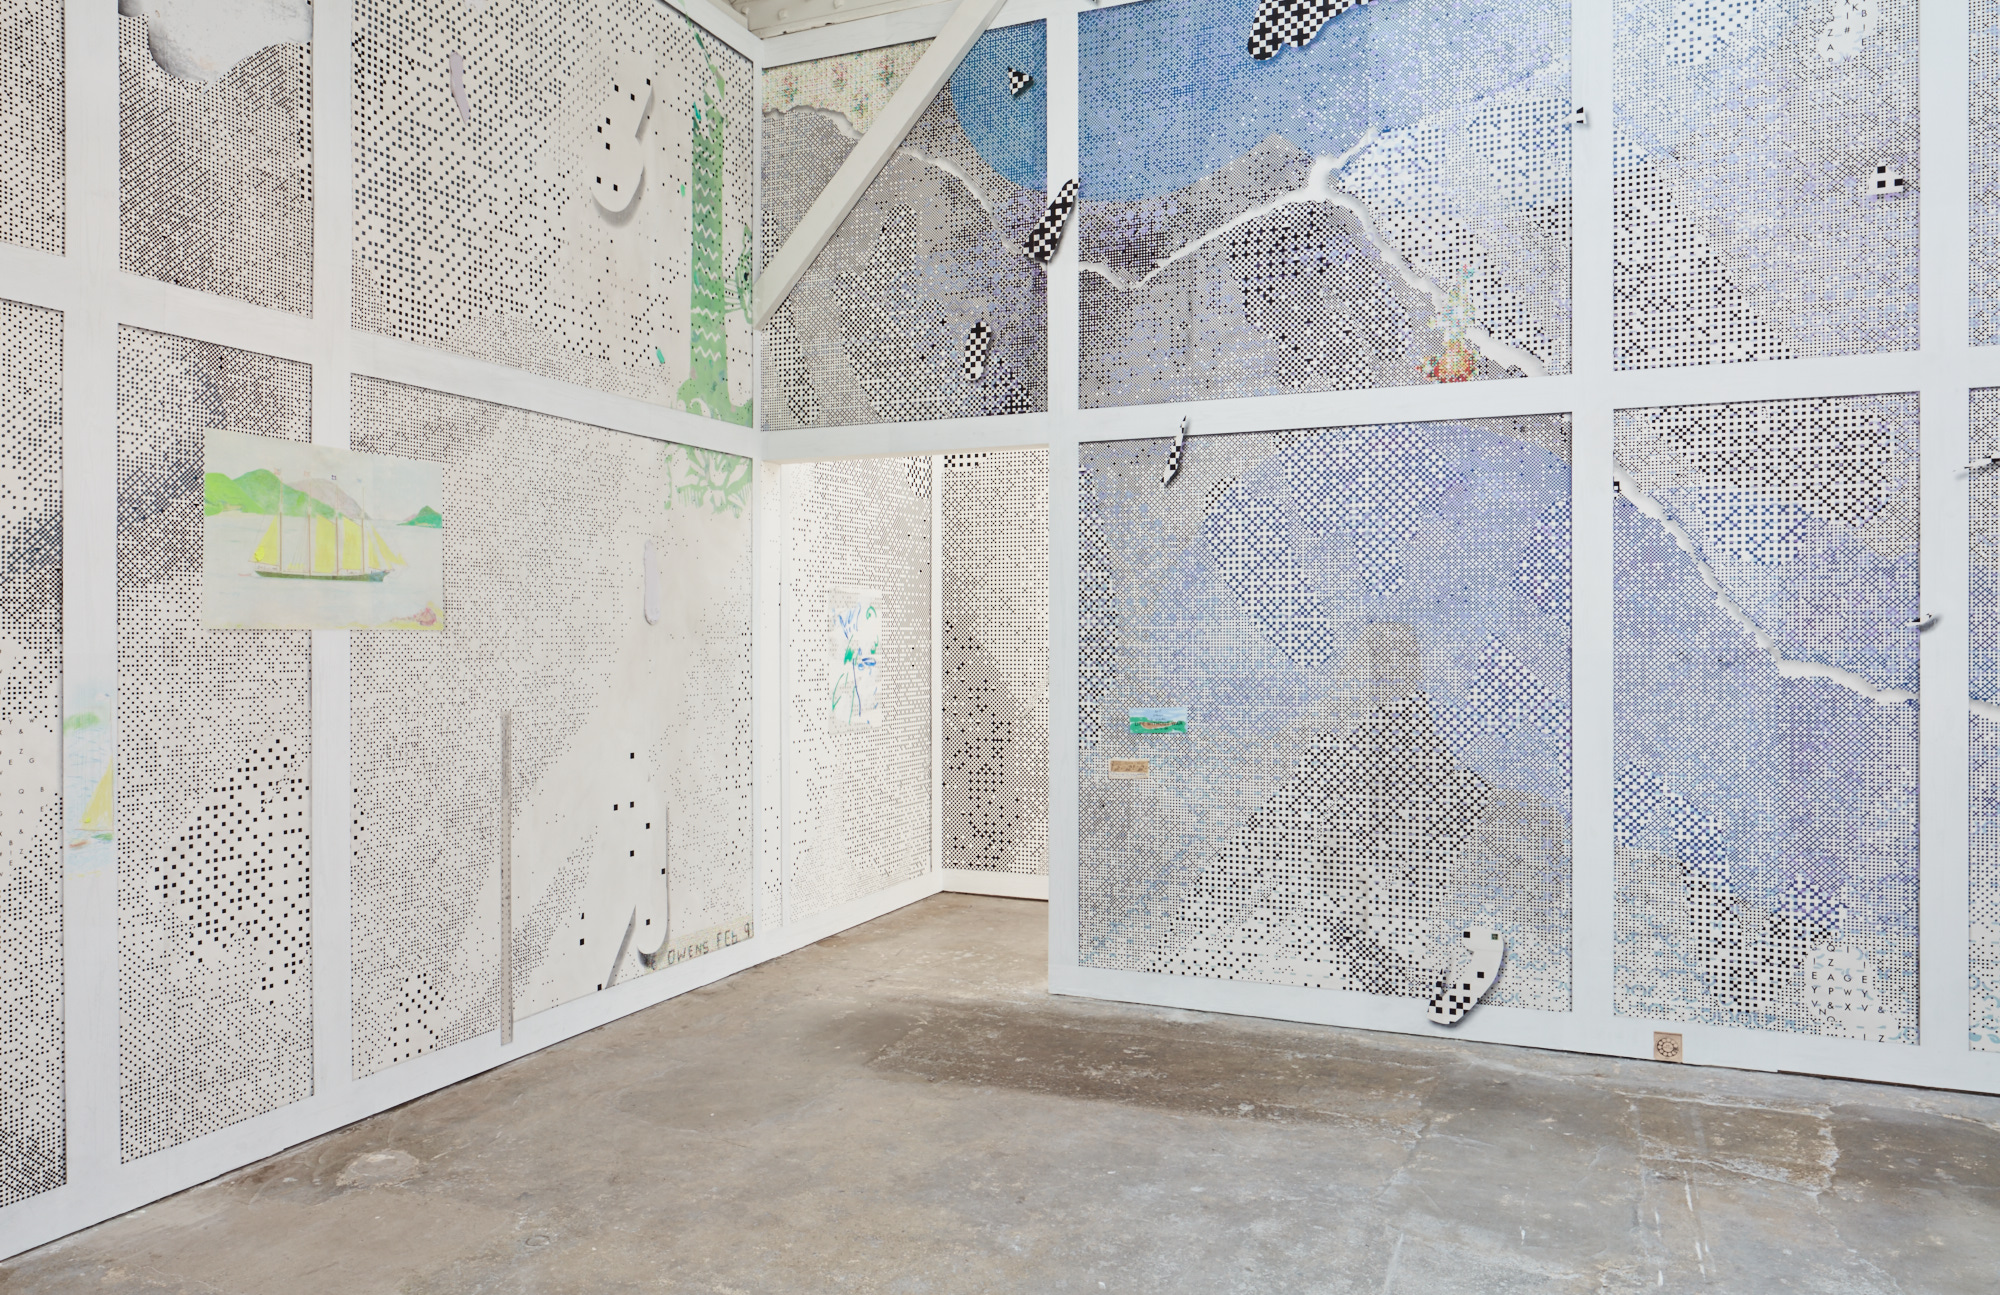 Installation view, Laura Owens: Ten Paintings at the Wattis Institute for Contemporary Art, San Francisco, 2016. Courtesy of the artist and the Wattis Institute for Contemporary Art.